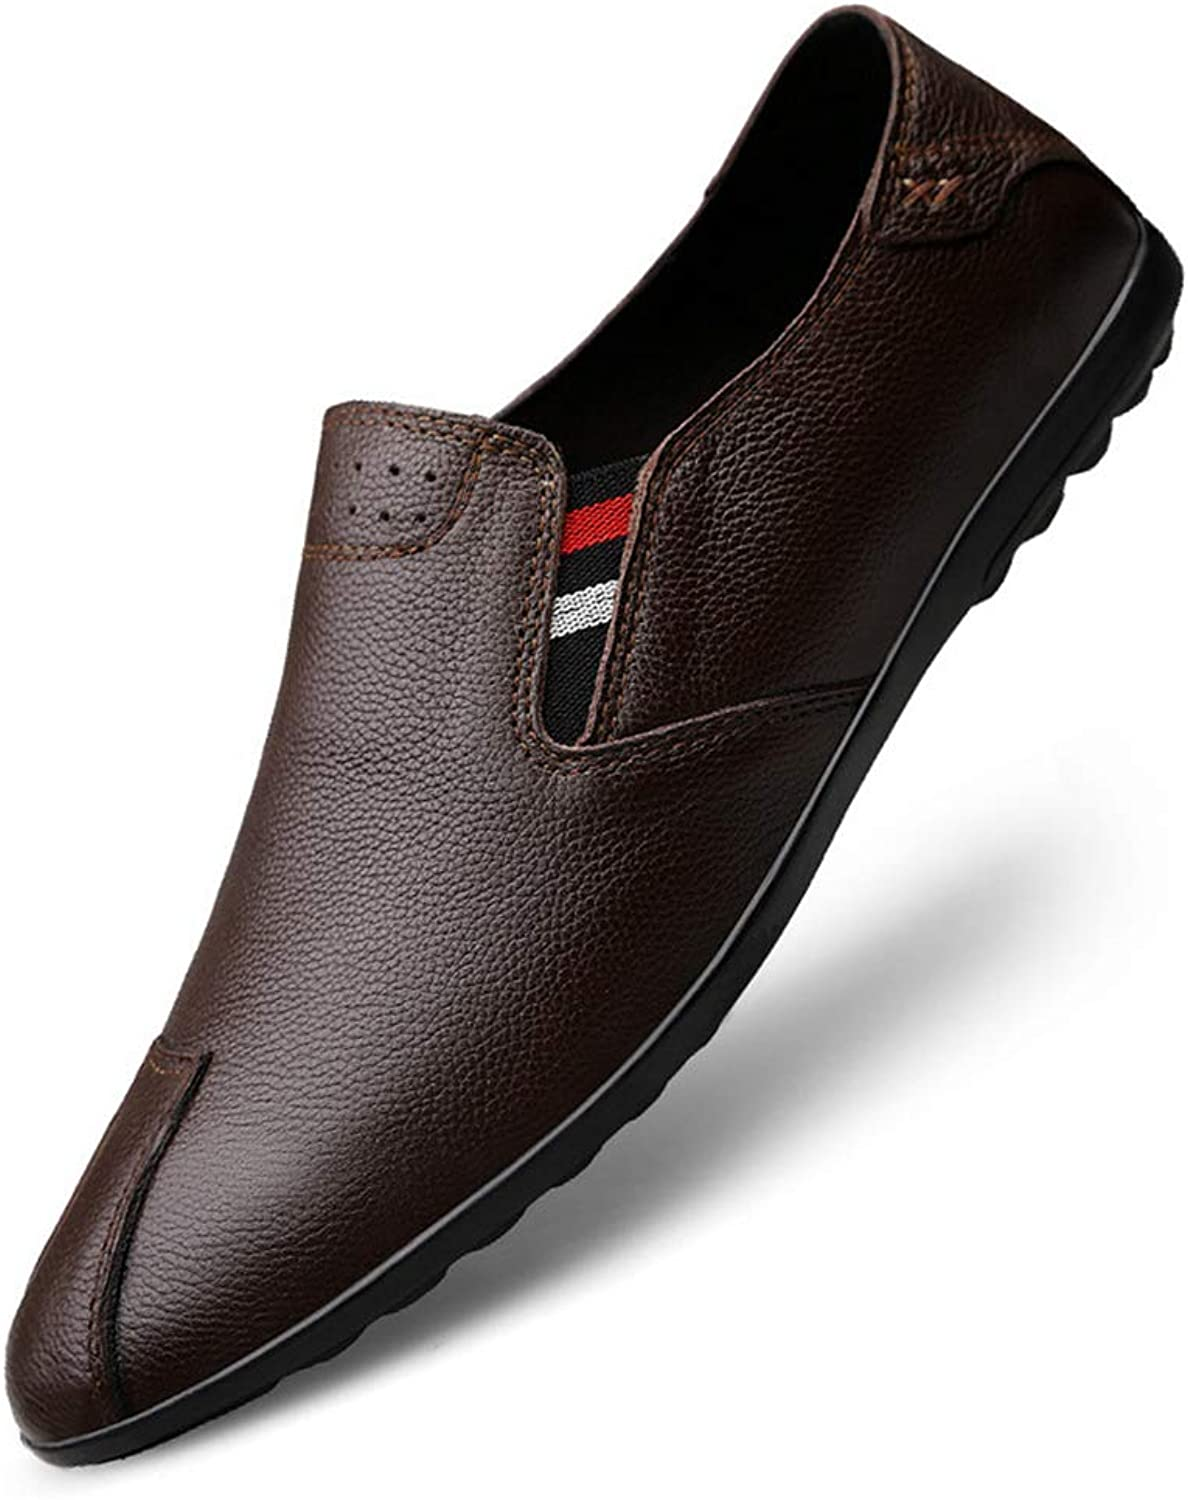 Men's shoes Leather Spring Summer Comfort Loafers & Slip-Ons For Casual Office & Career Outdoor shoes Black Brown,Brown,38